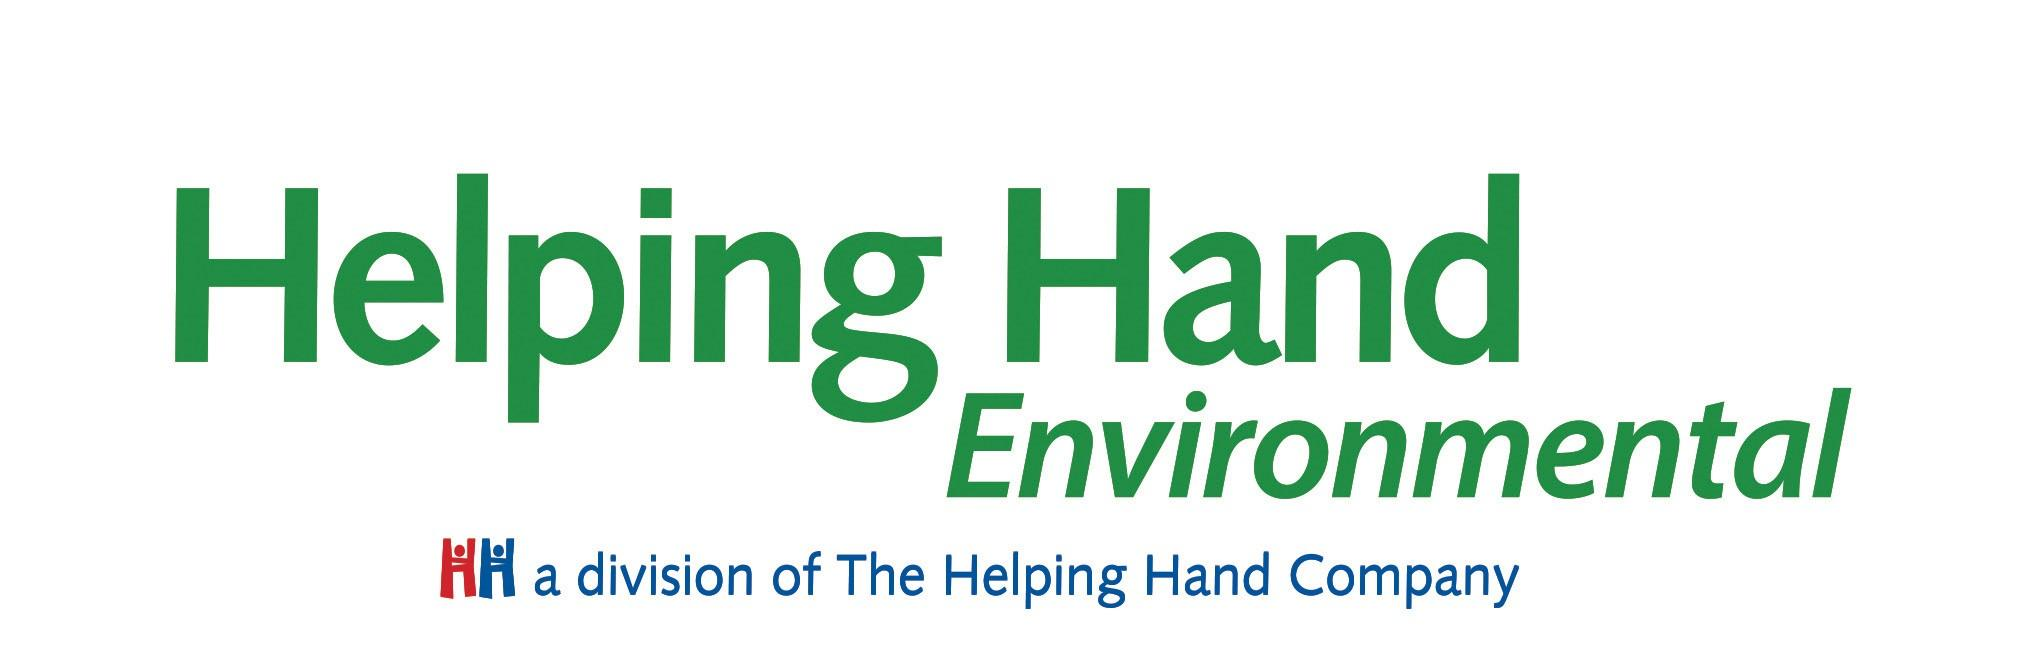 Helping Hand environmental Logo